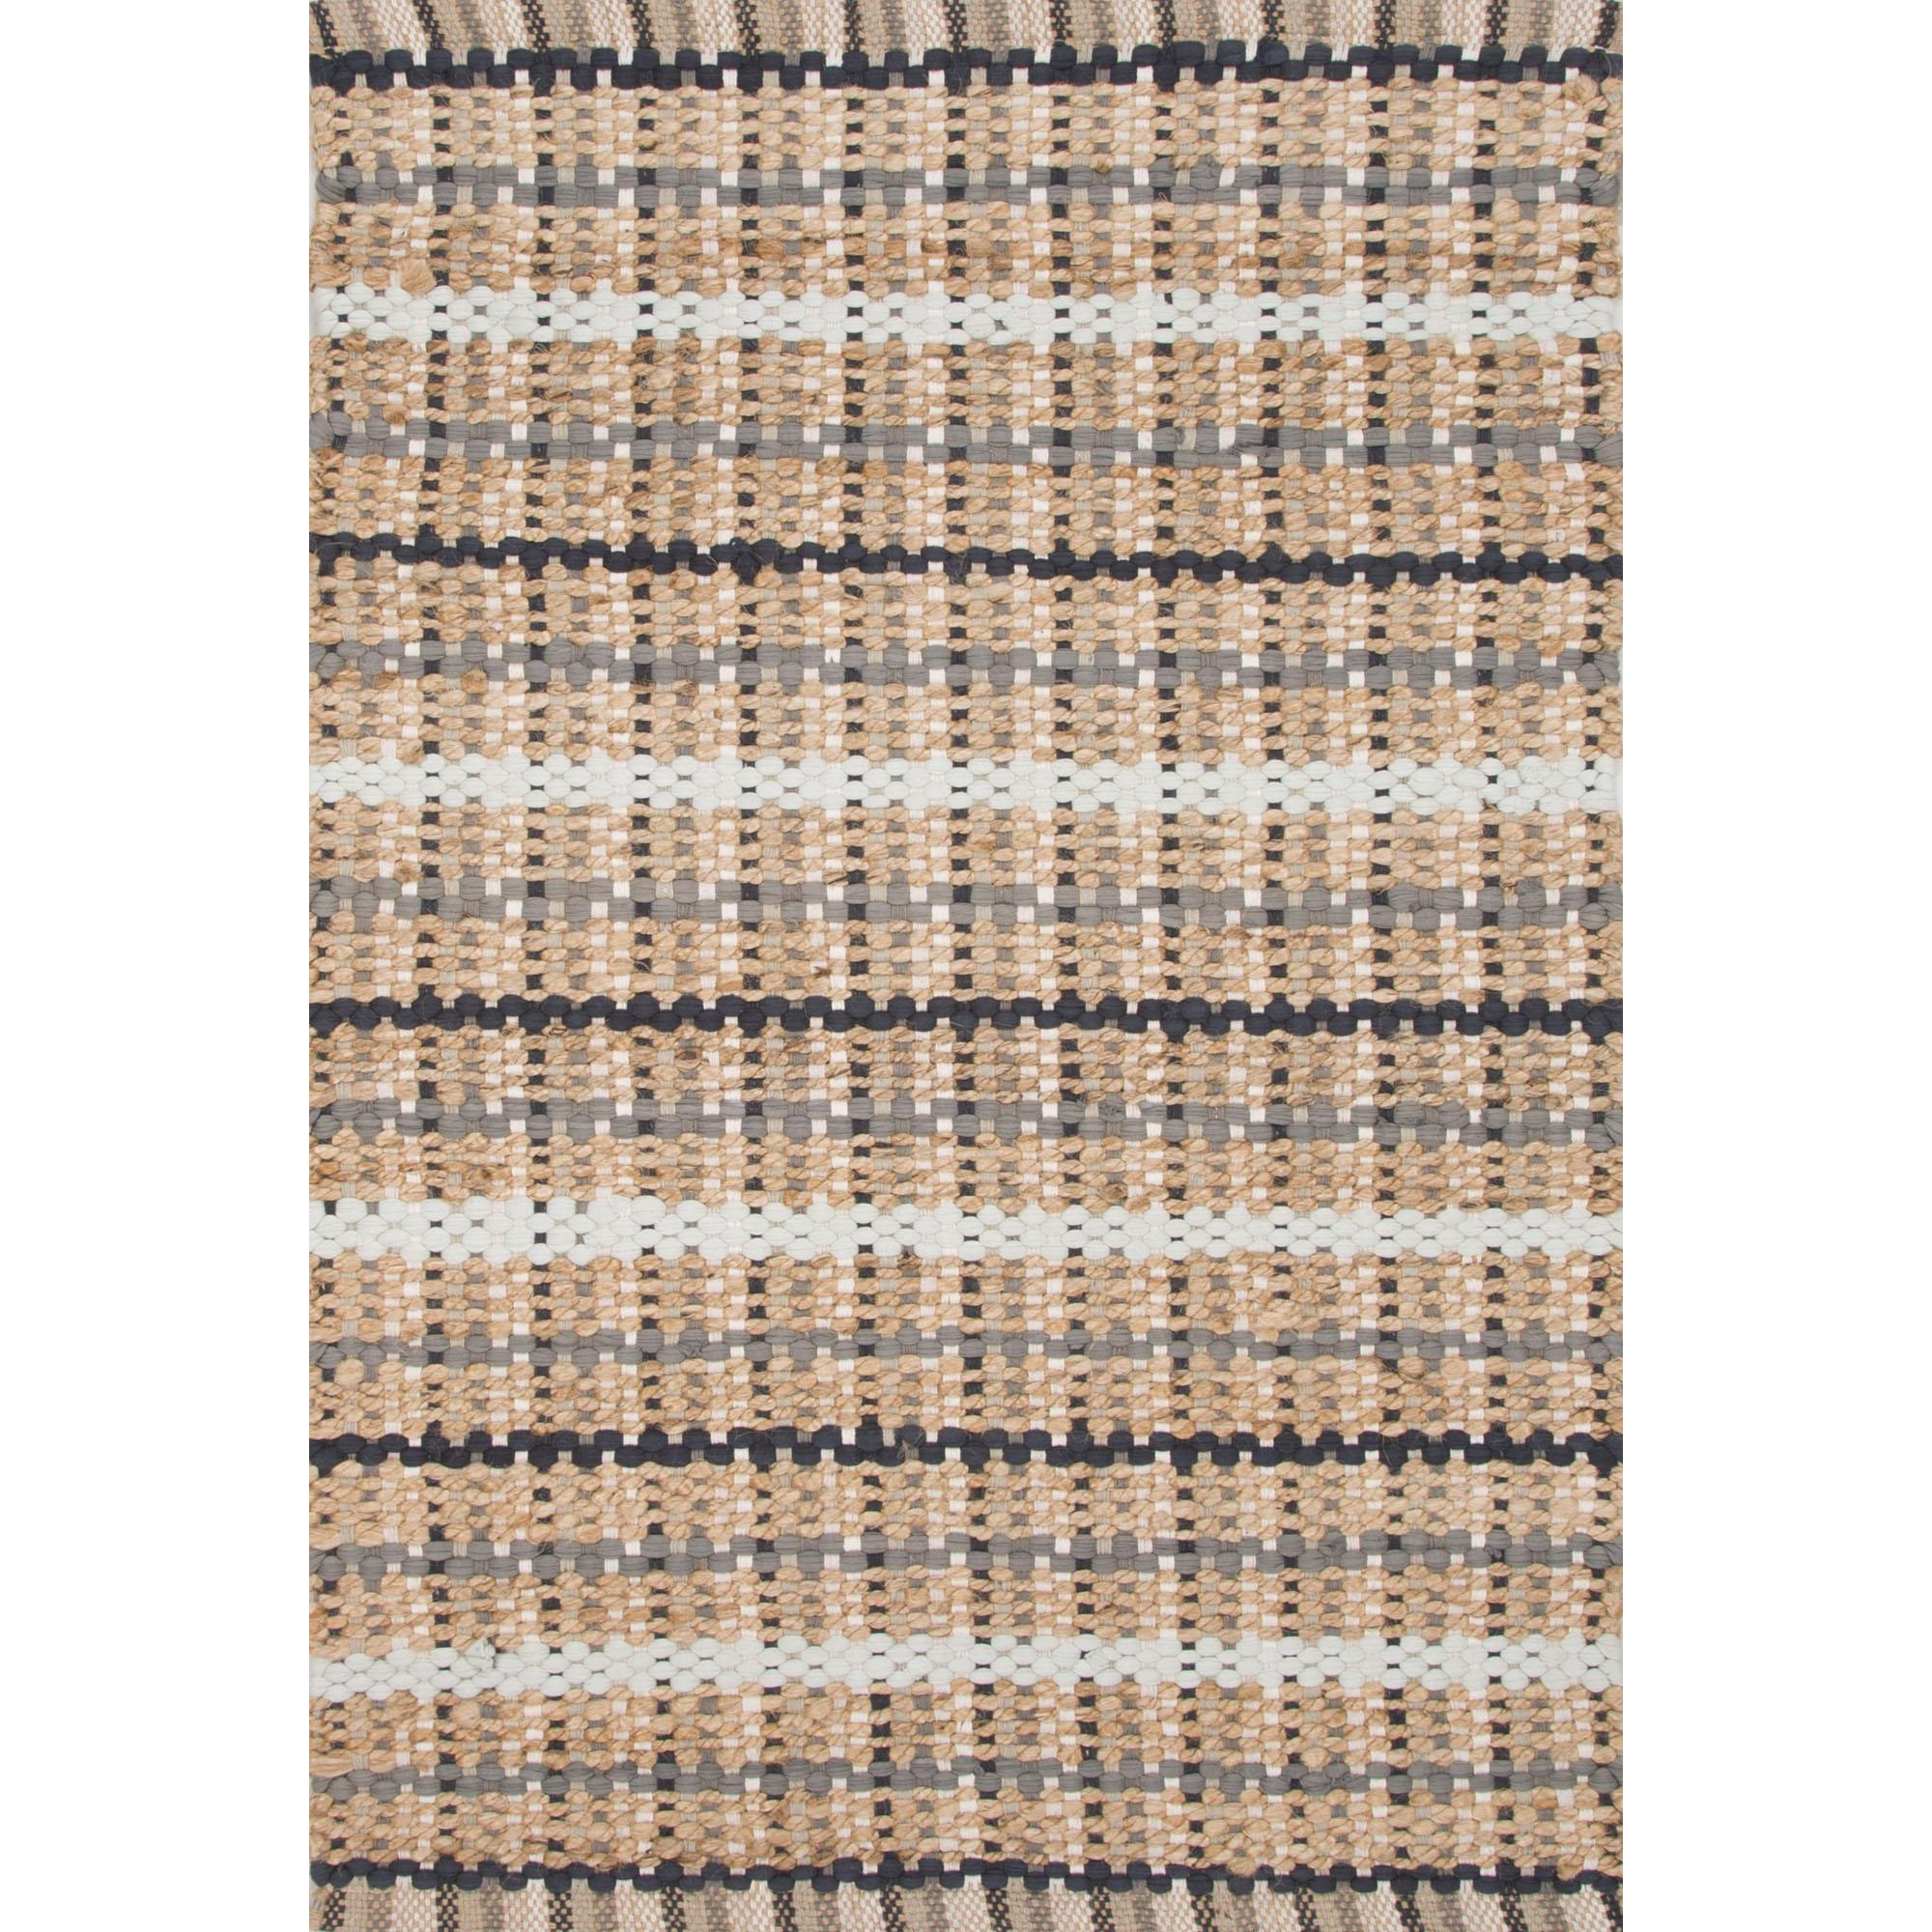 Andes 8 x 10 Rug by JAIPUR Rugs at Sprintz Furniture